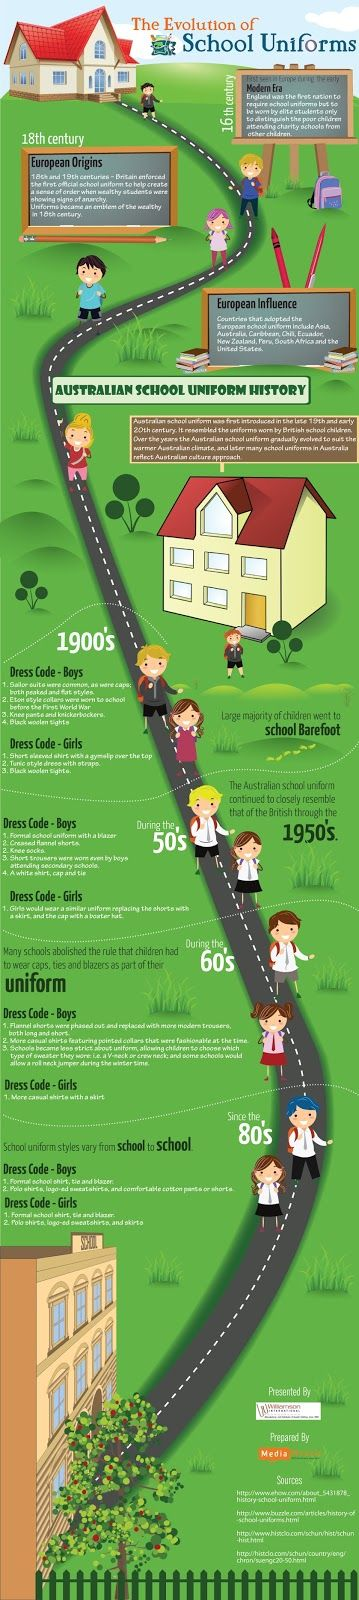 Students usually hate wearing school uniforms. In order to make school uniform enjoyable for kids, look out for smart and trendy schoolwear like polo school shirts, school jumpers, blazers and jackets. Williamson International presents this infographic which describes the evolution of school uniforms from 16th century to 1980's.